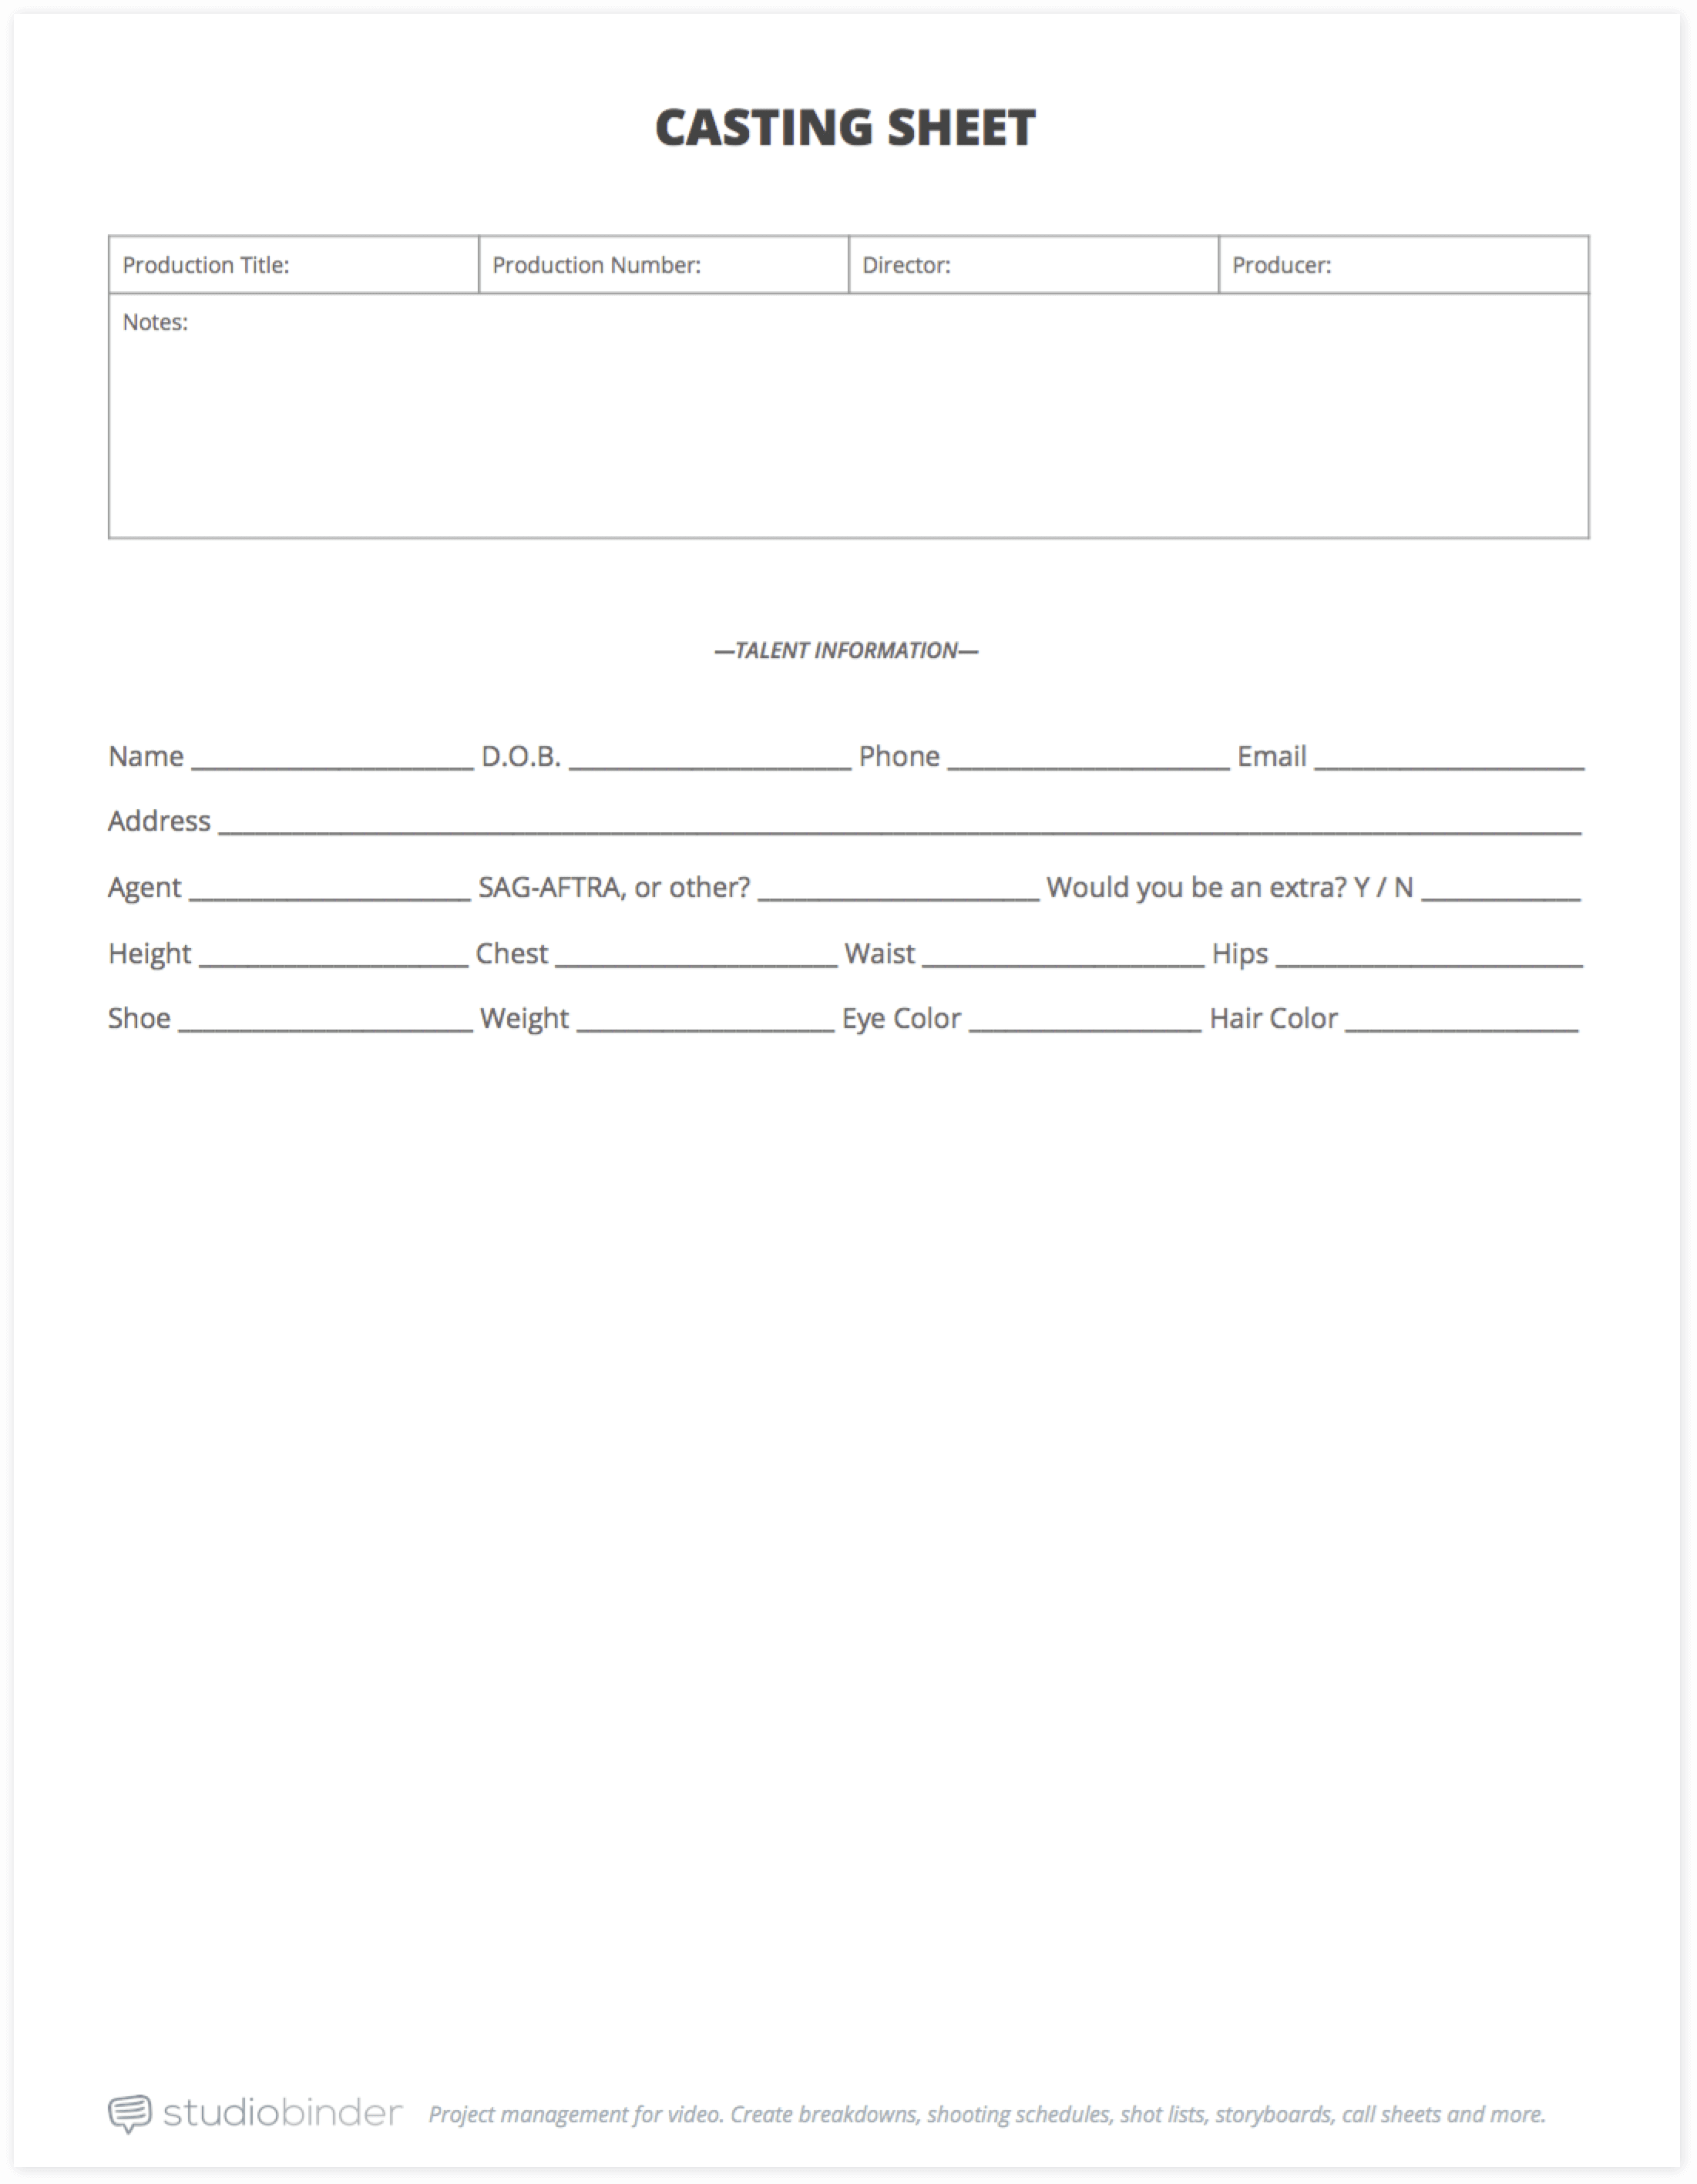 How to Run an Open Casting Call (with FREE Casting Sheet Template) - Casting Sheet